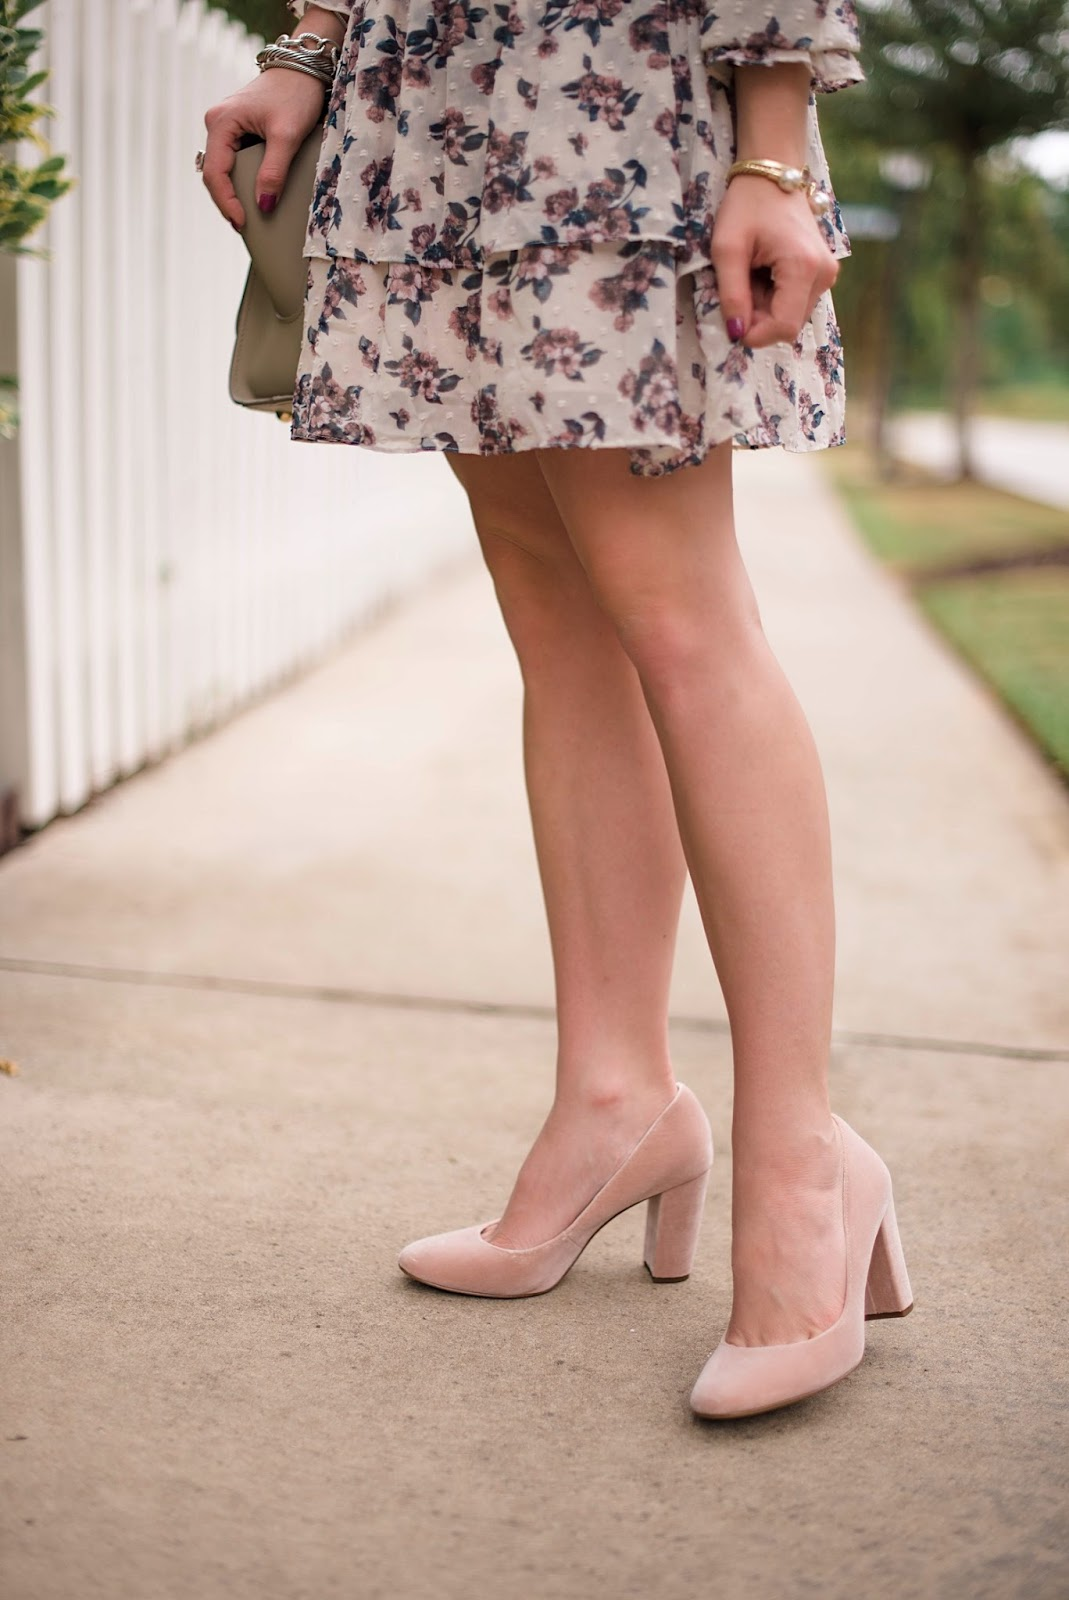 Velvet Pumps - Something Delightful Blog